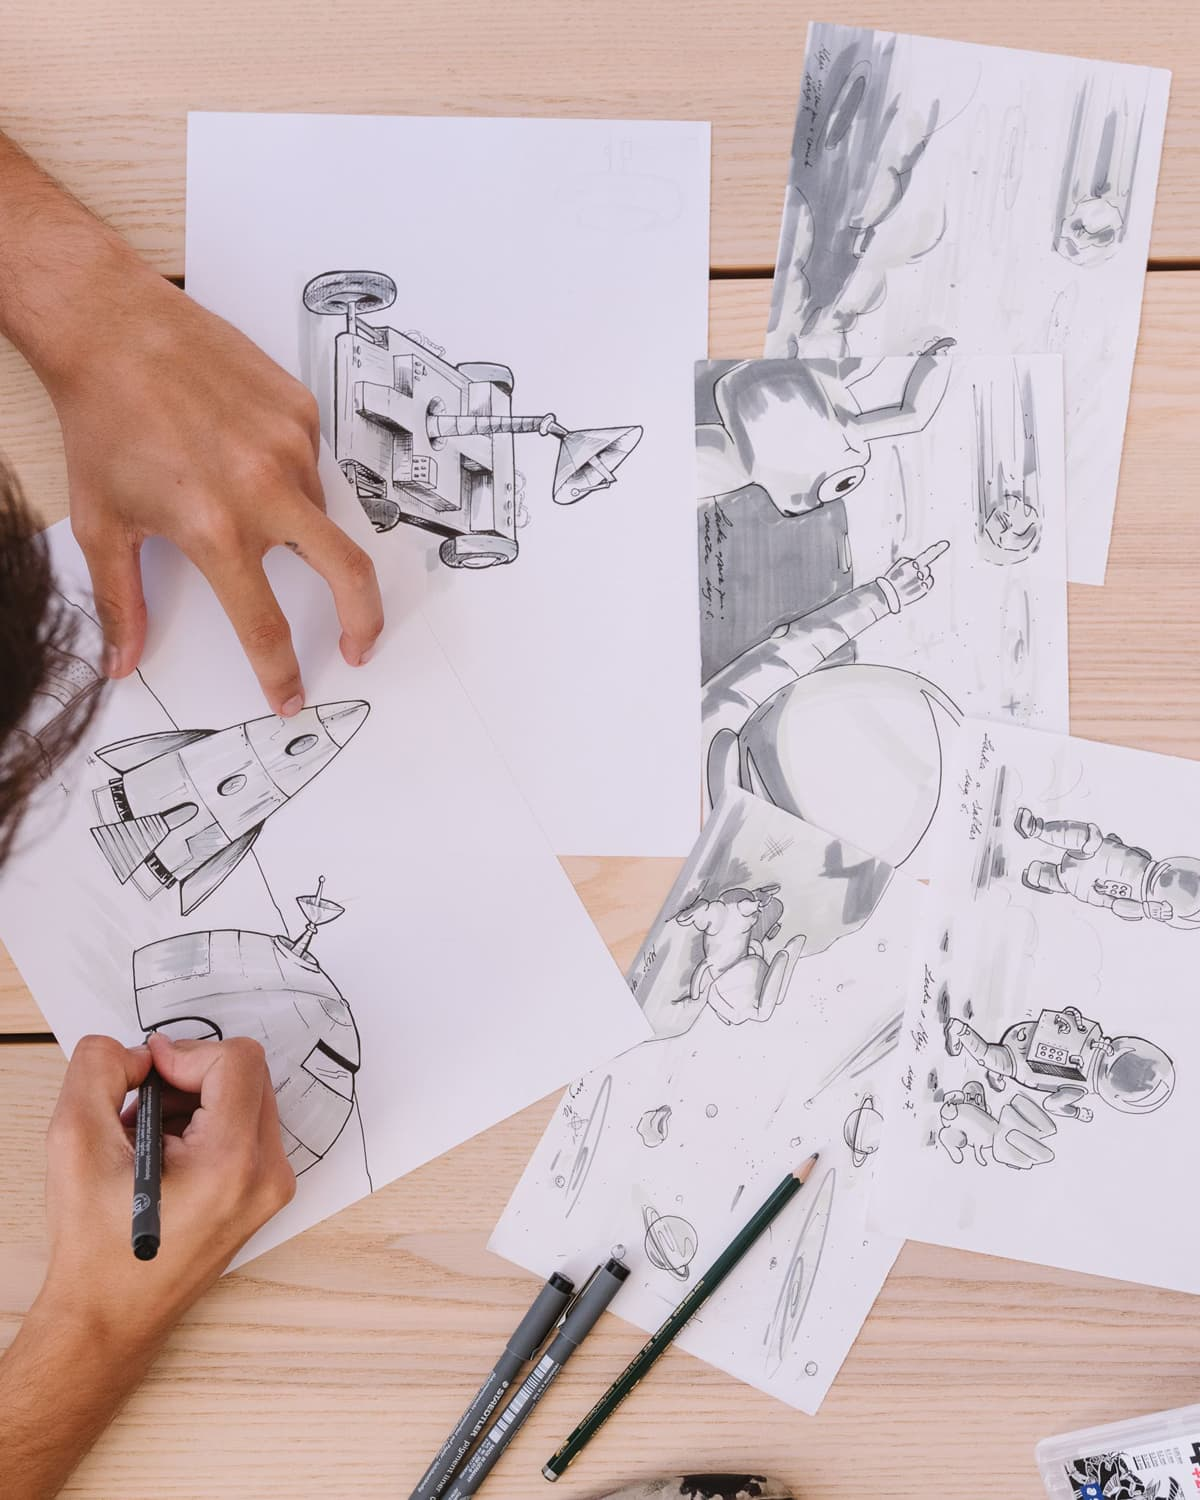 Gonçalo drawing scenes for The Meji Adventures